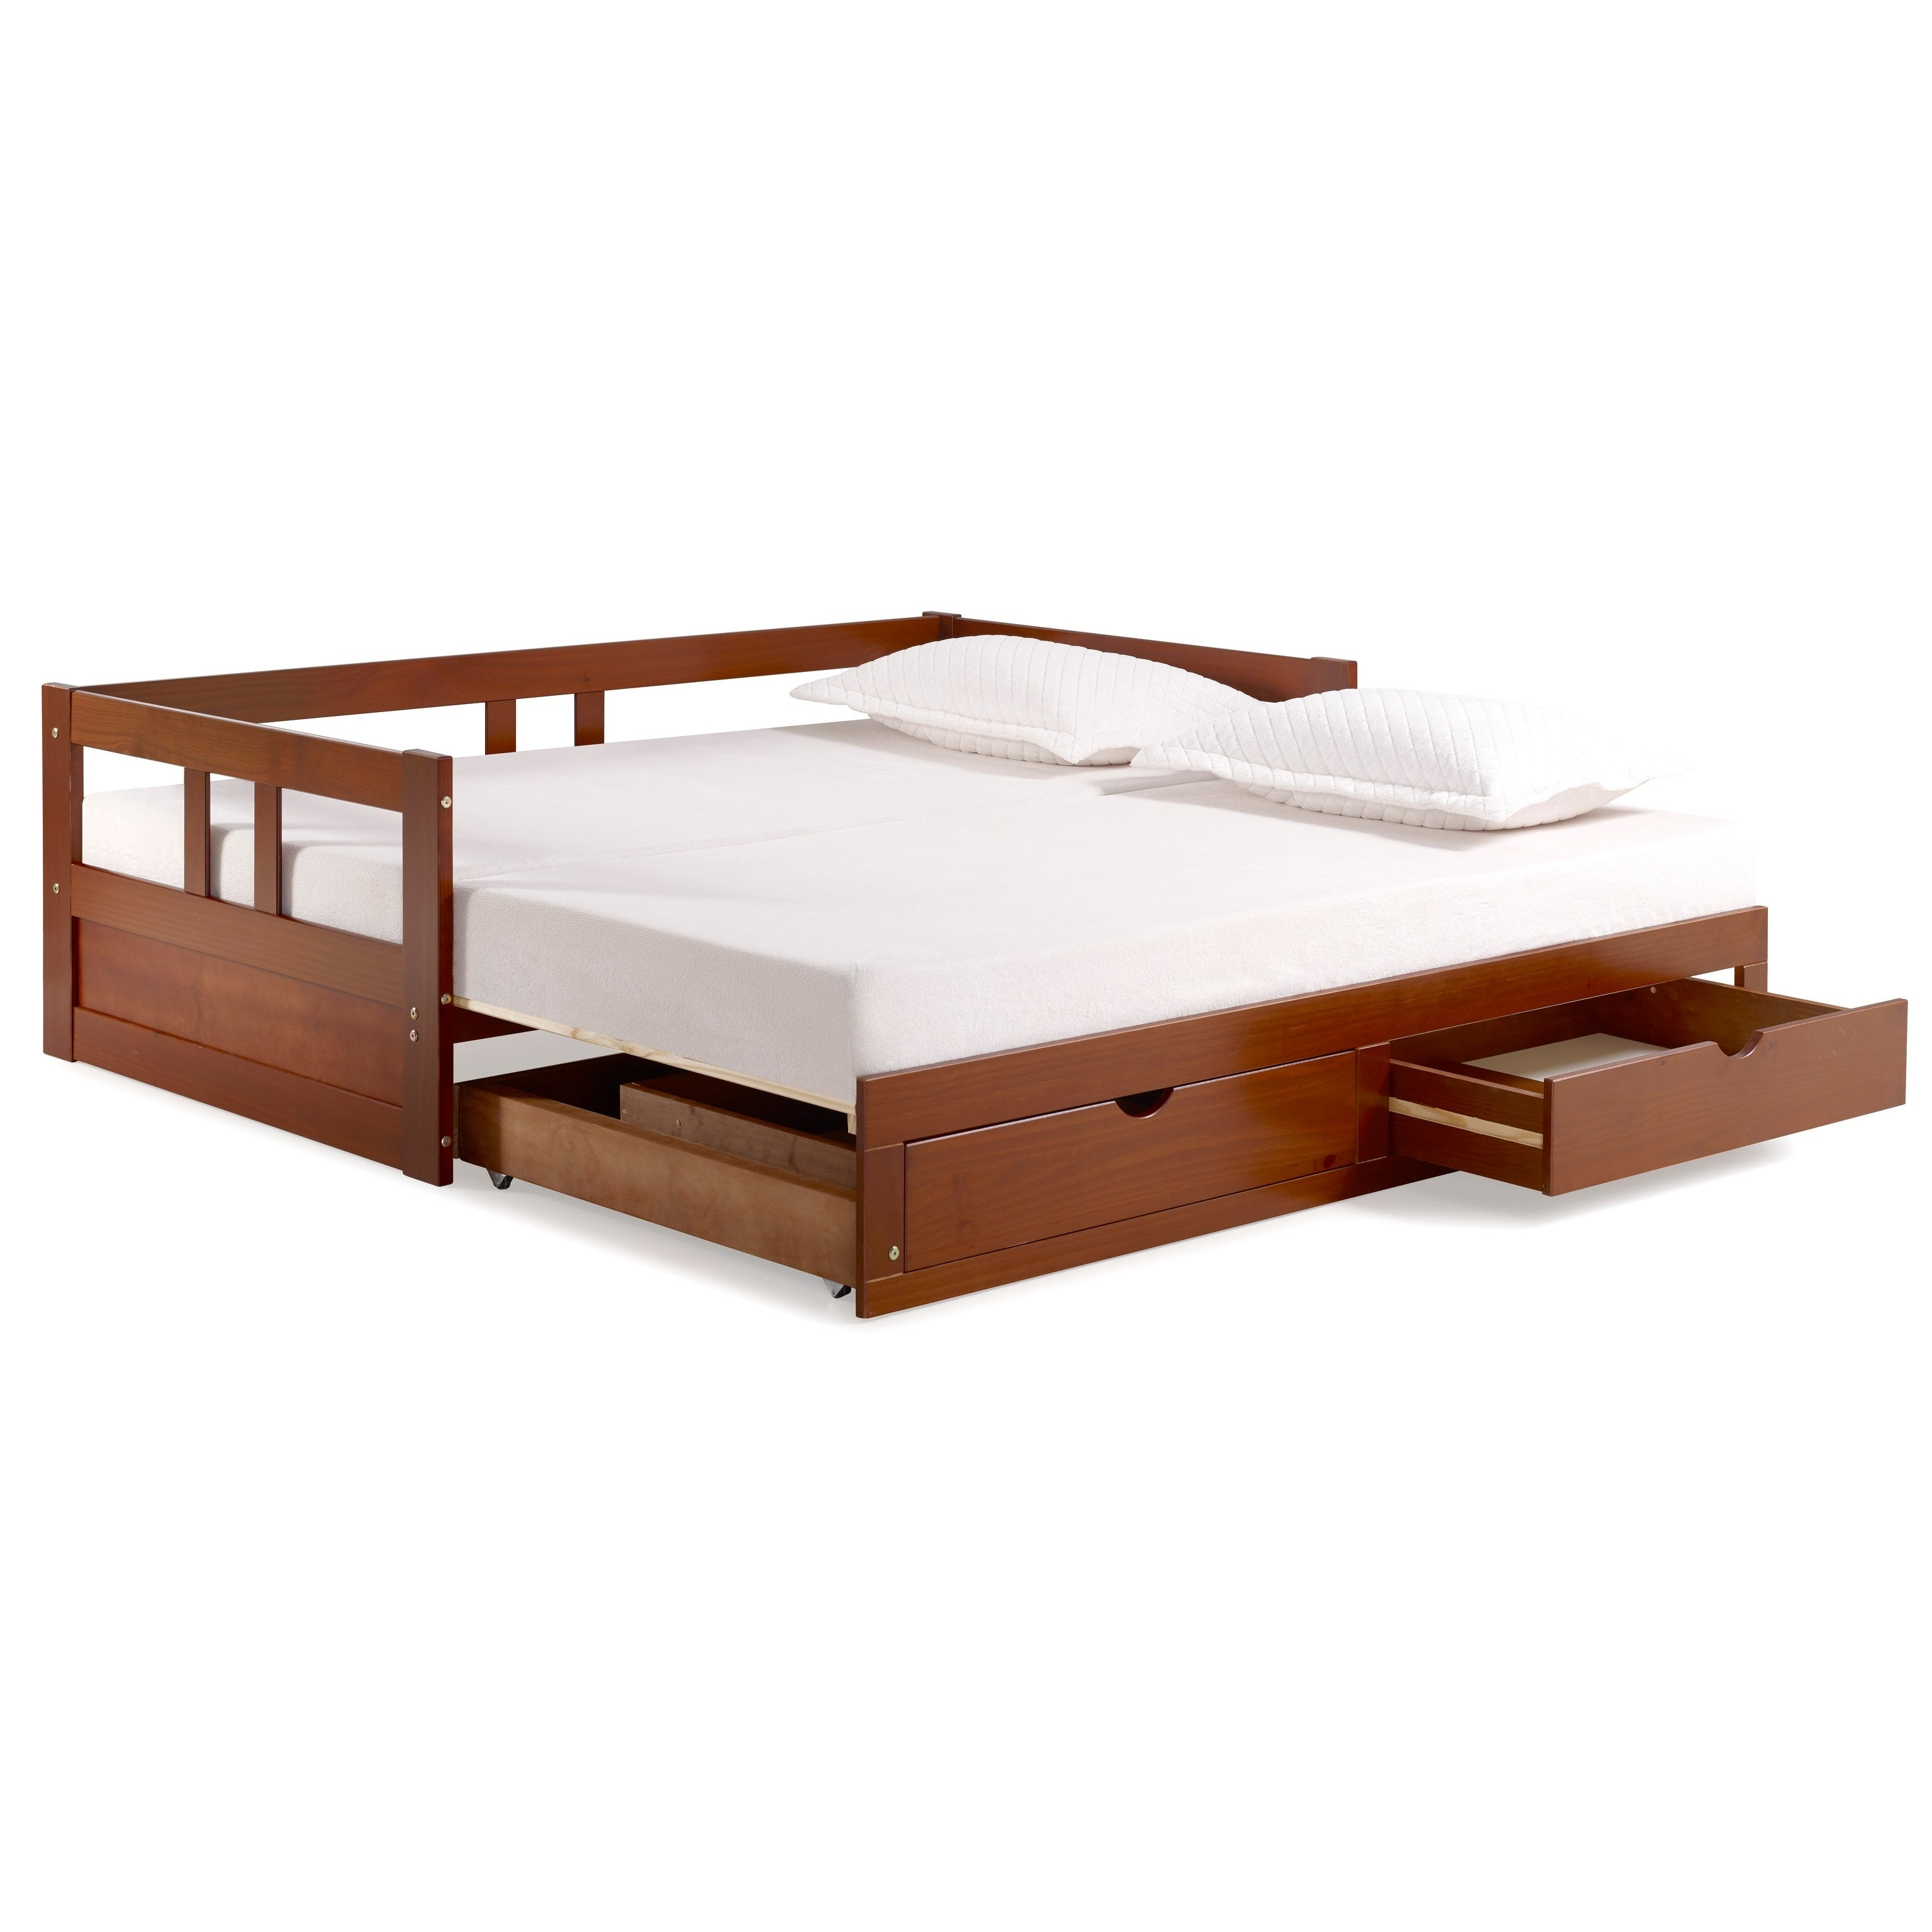 Melody Twin To King Trundle Daybed With Storage Drawers, Chestnut   Free  Shipping Today   Overstock.com   24261919